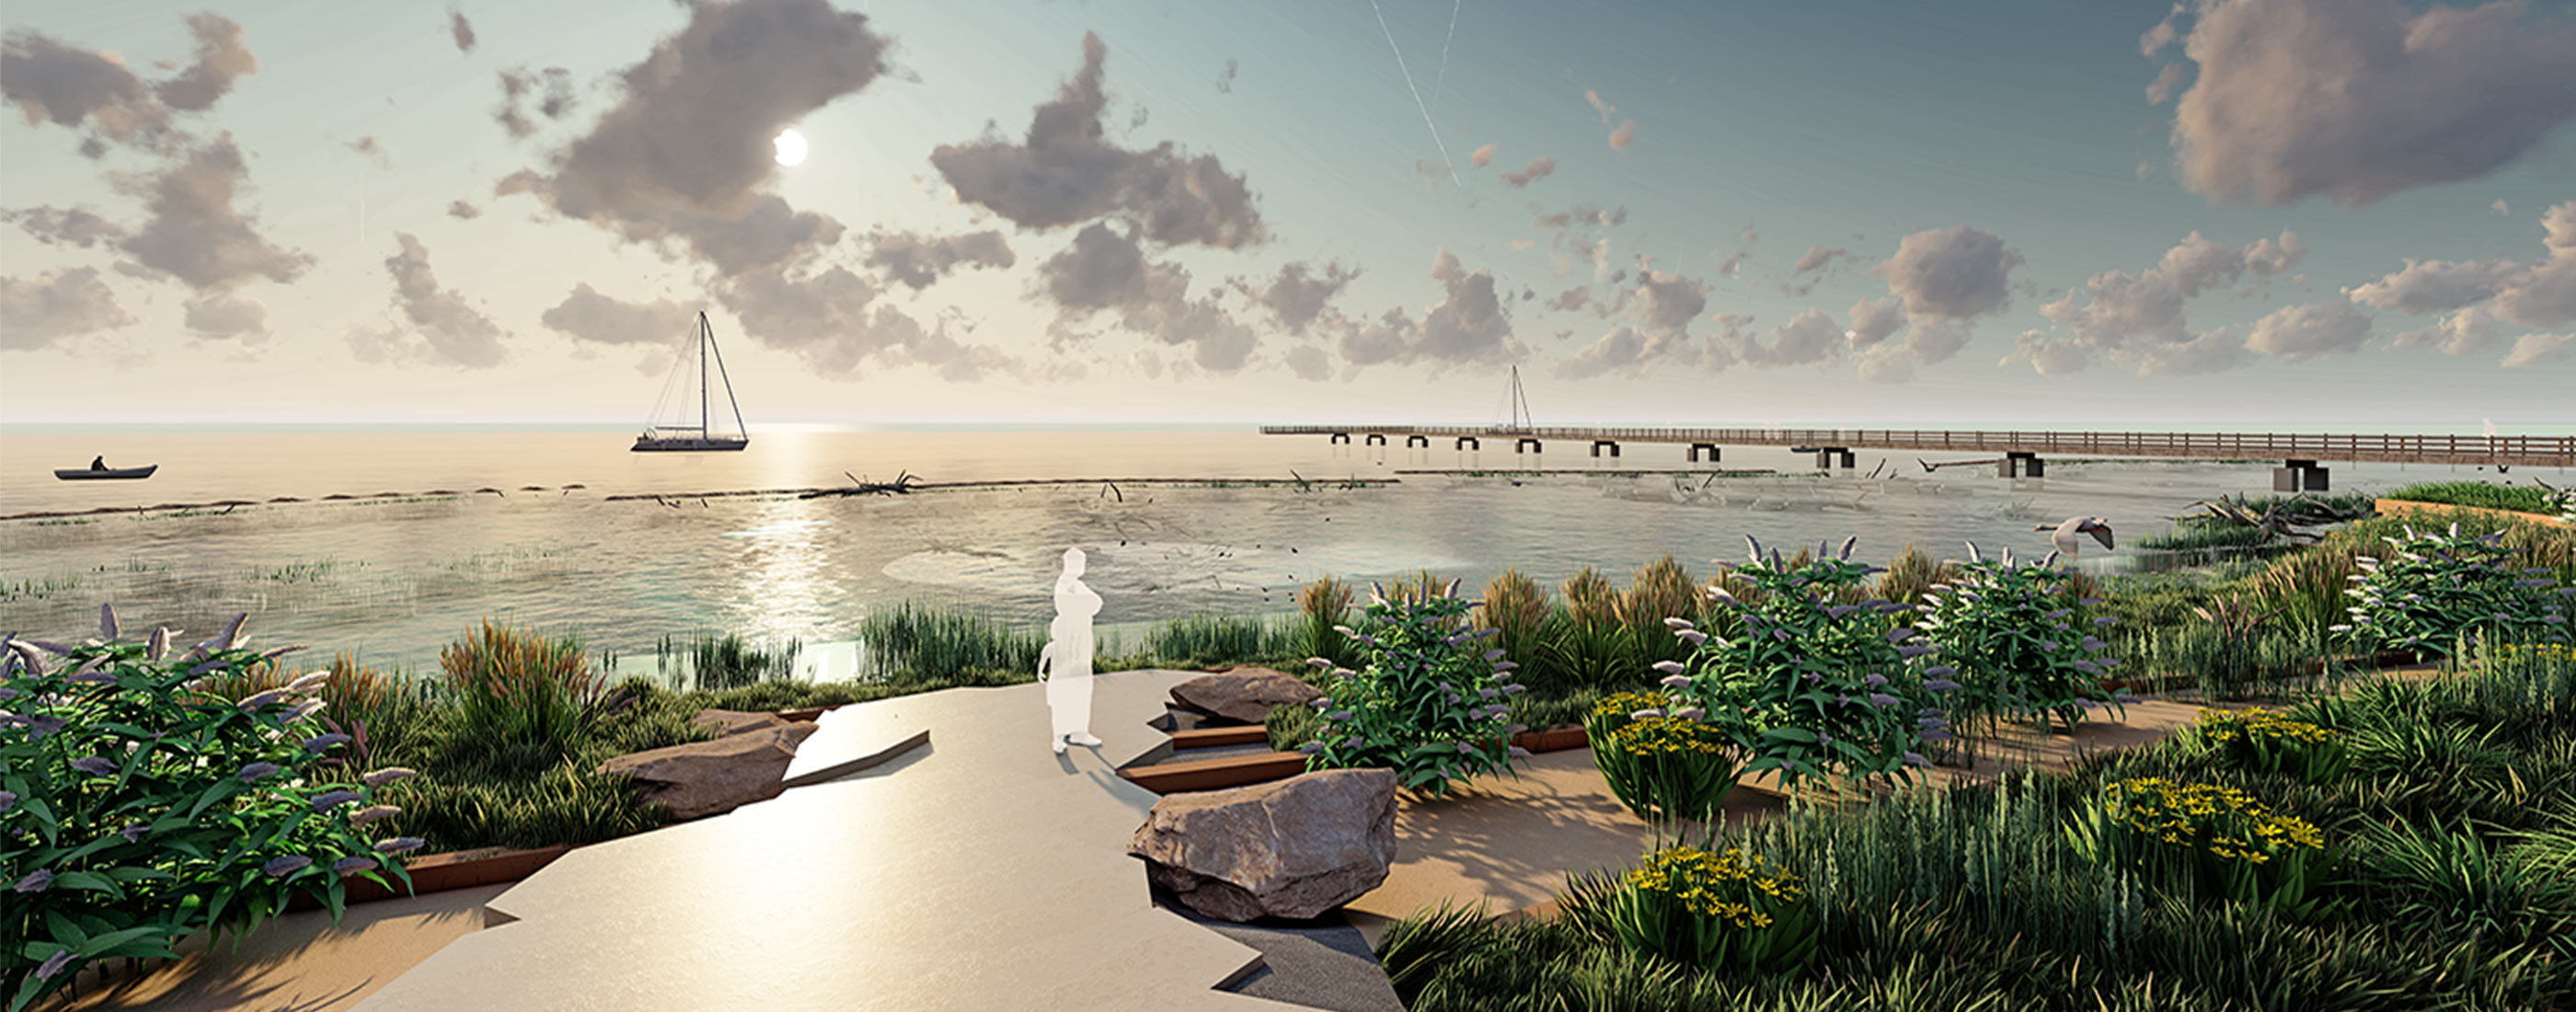 A rendering view of the proposed dock at Brandenburg Park Shoreline.